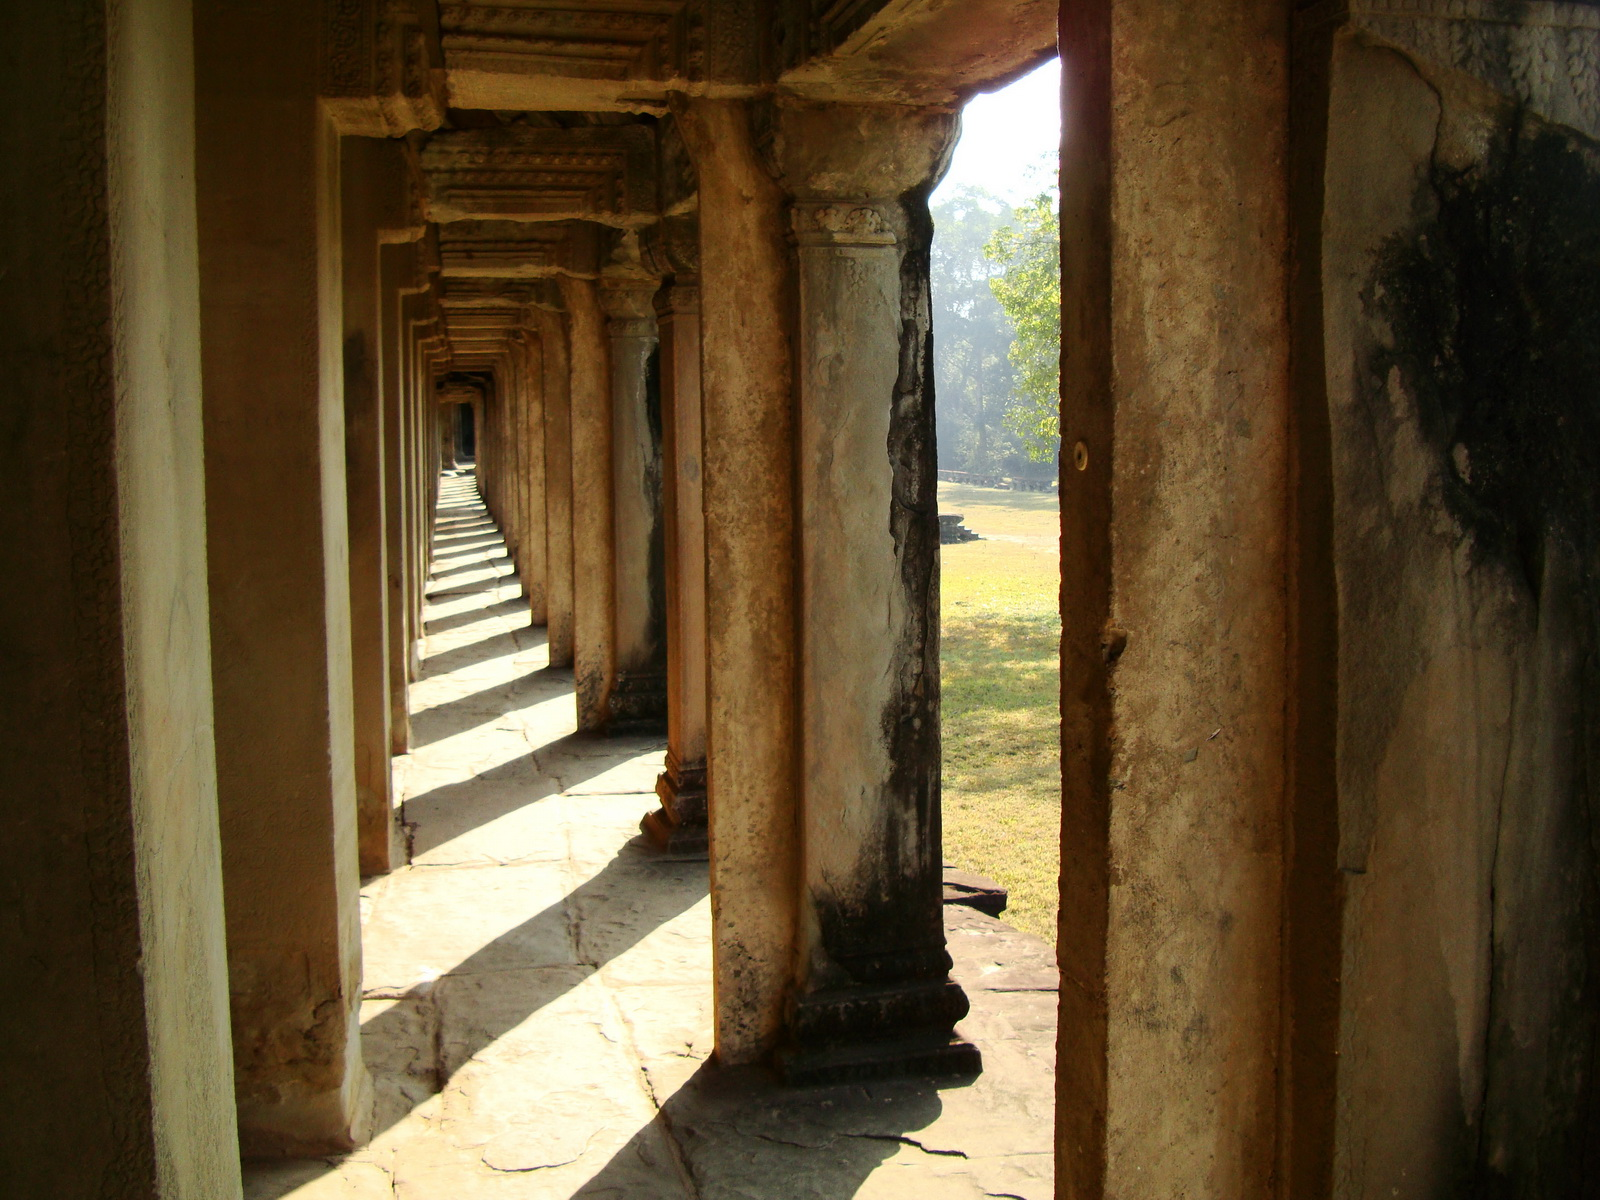 Khmer architecture east gallery south wing passageways 09